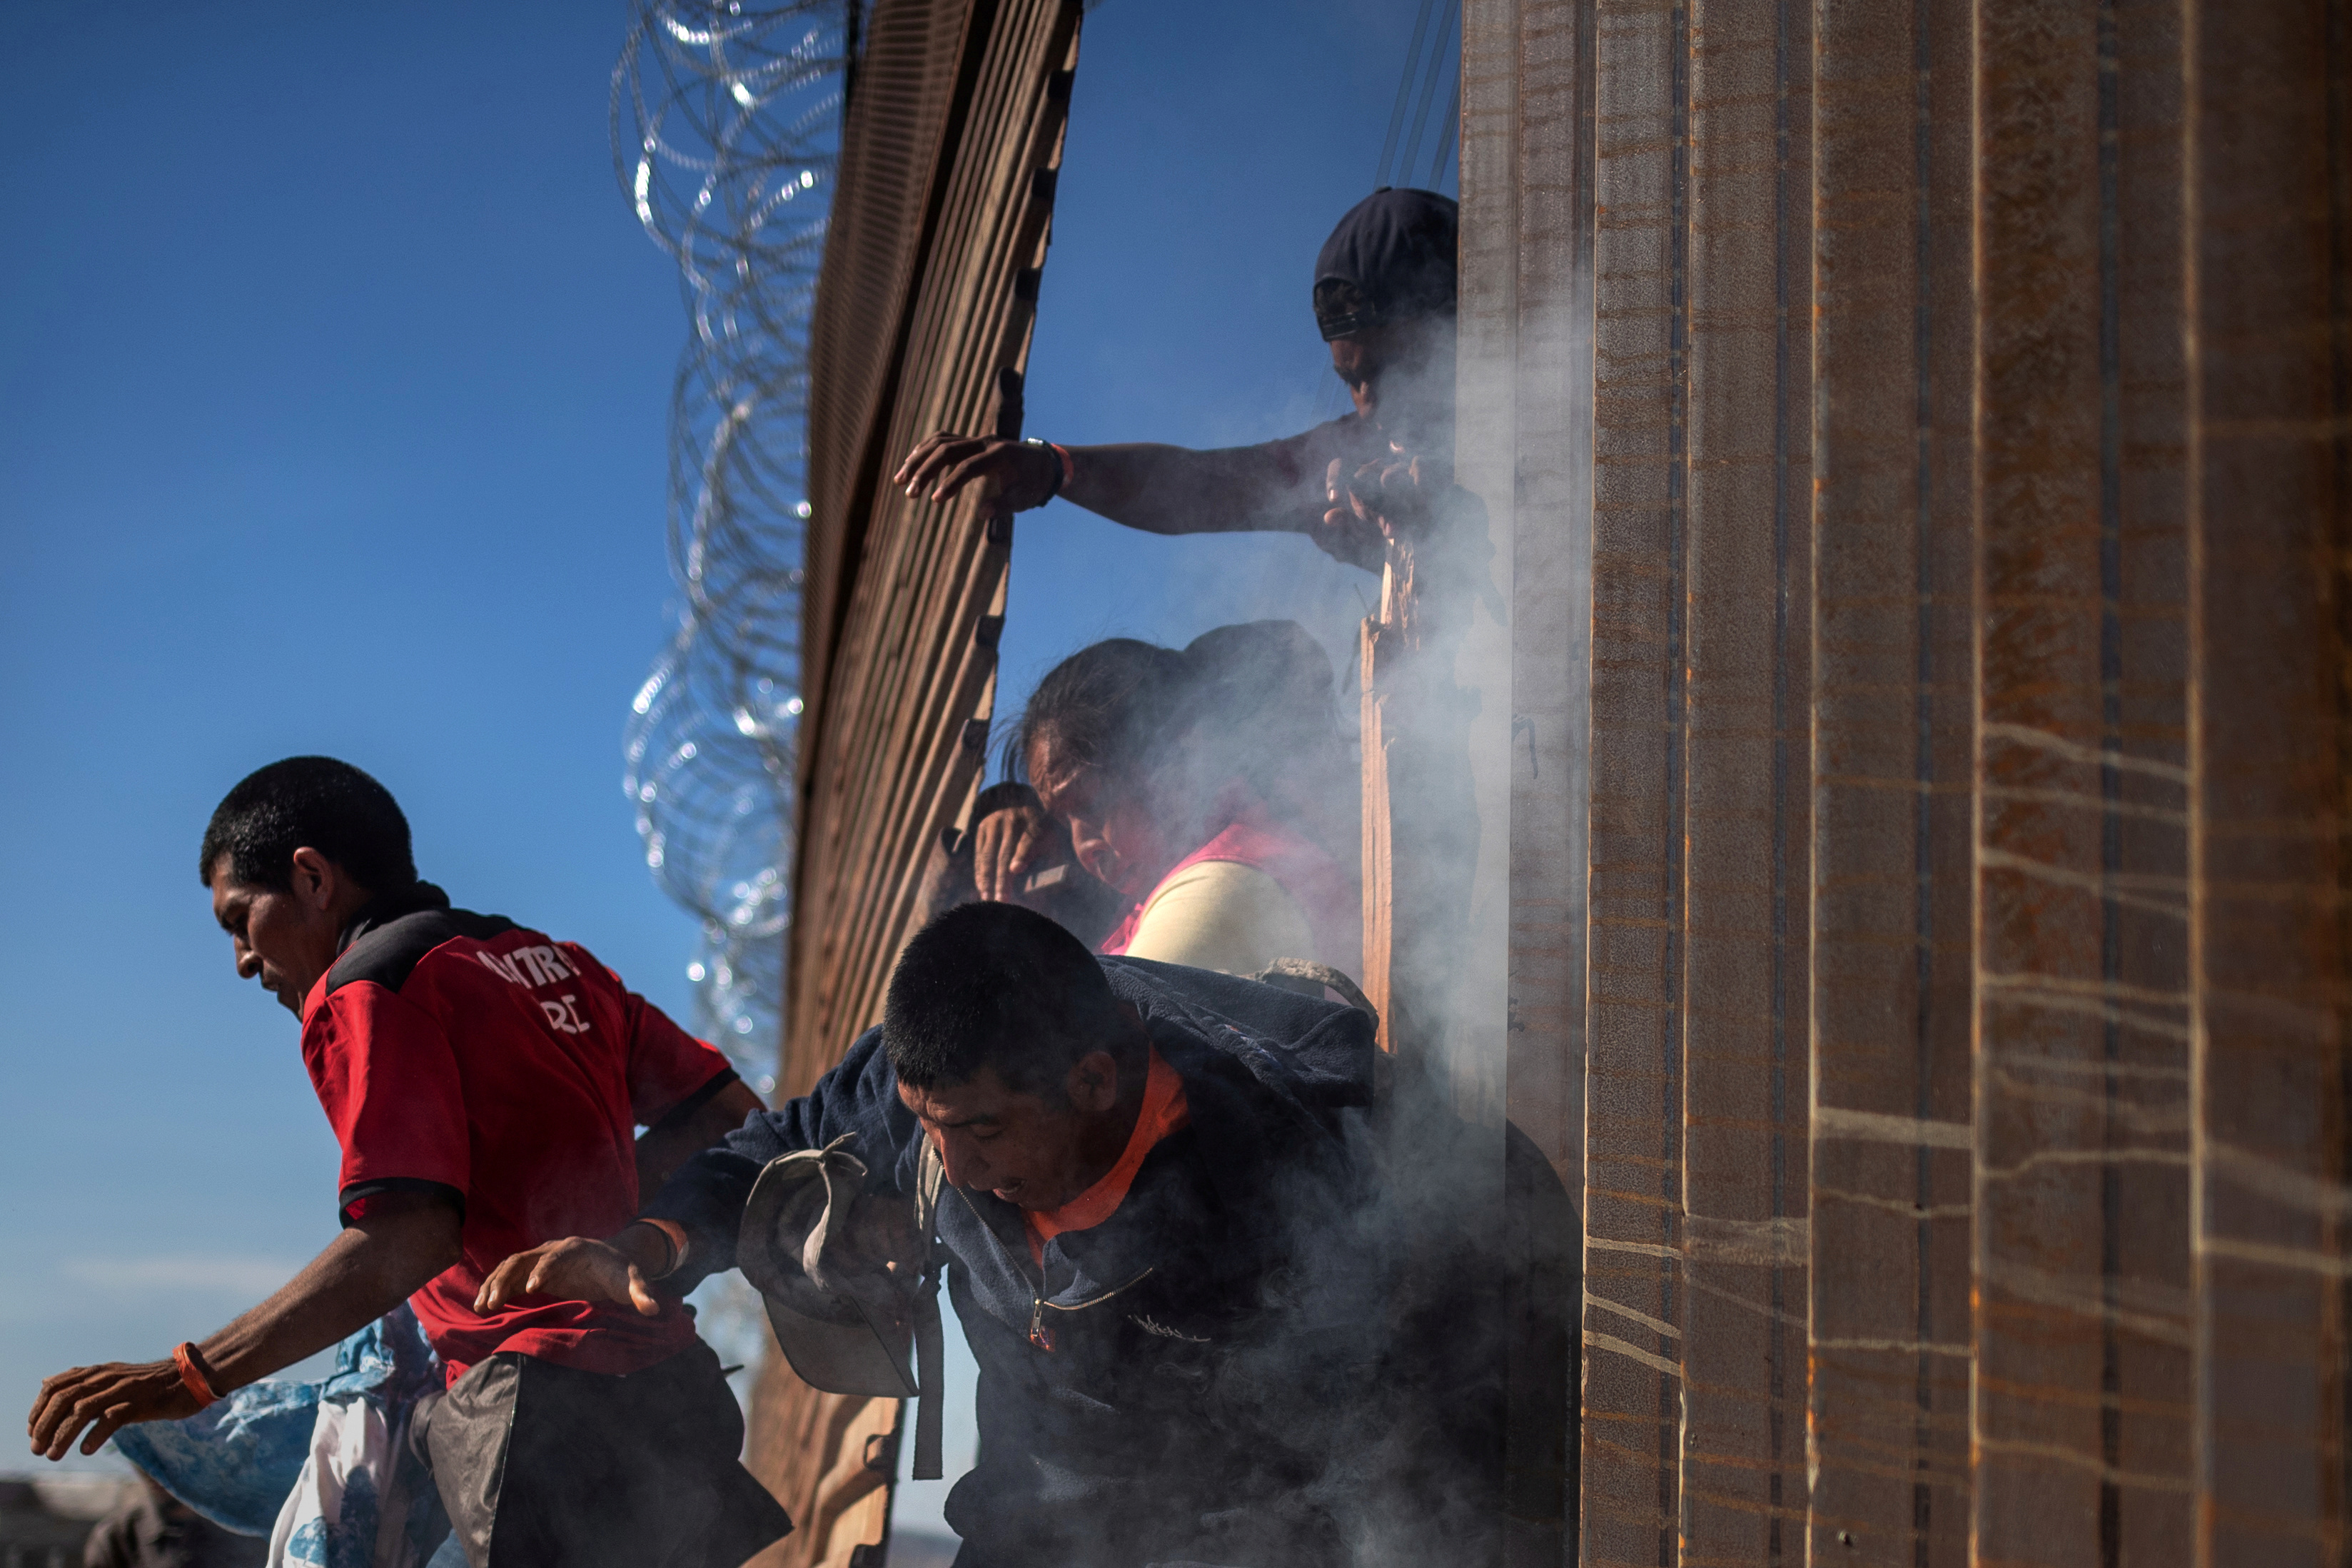 Migrants, part of a caravan of thousands from Central America trying to reach the United States, return to Mexico after being hit by tear gas by U.S. Customs and Border Protection (CBP) after attempting to illegally cross the border wall into the United States in Tijuana, Mexico REUTERS/Adrees Latif